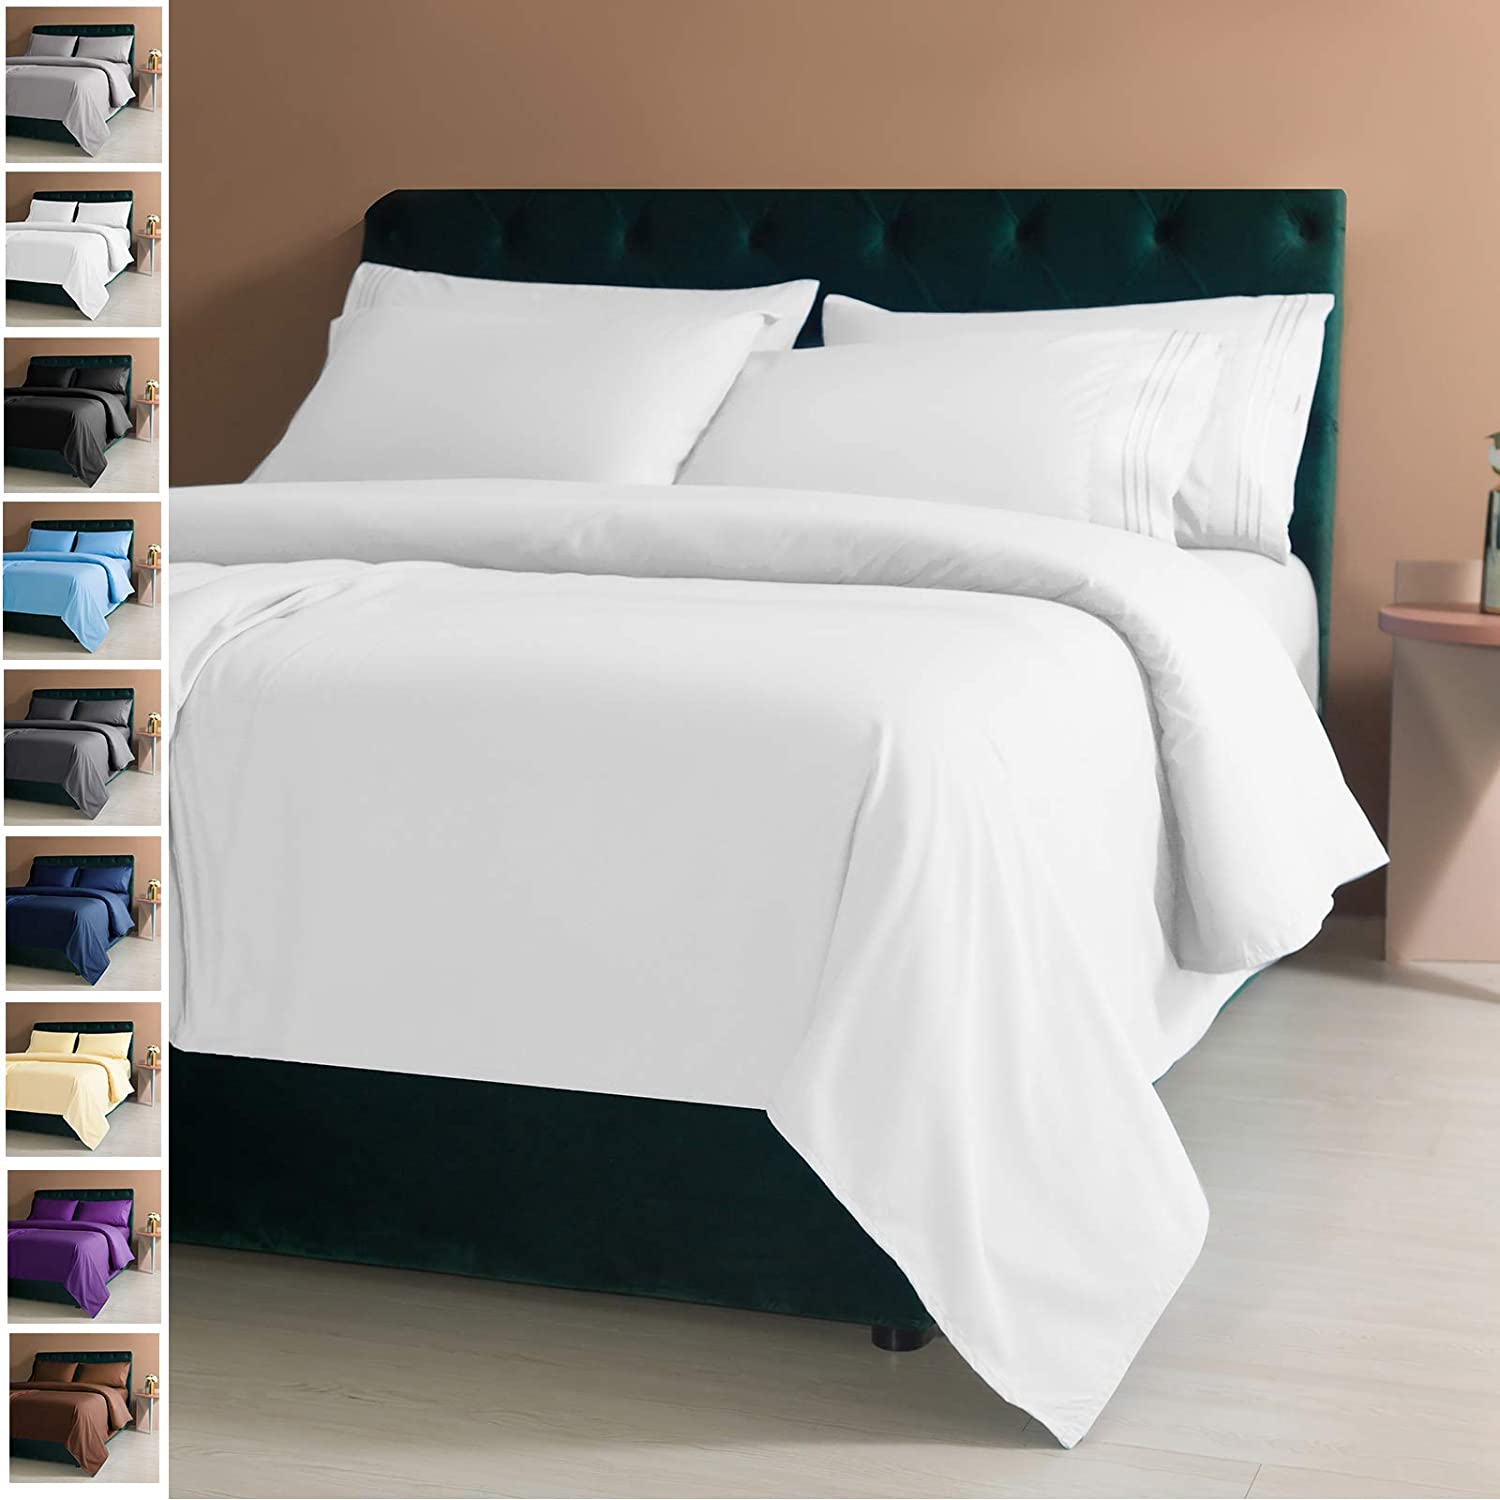 Amazon Com Lianlam Queen 6 Piece Bed Sheets Set Super Soft Brushed Microfiber 1800 Thread Count Breathable Luxury Egyptian Sheets Deep Pocket Wrinkle And Hypoallergenic Queen White Kitchen Dining